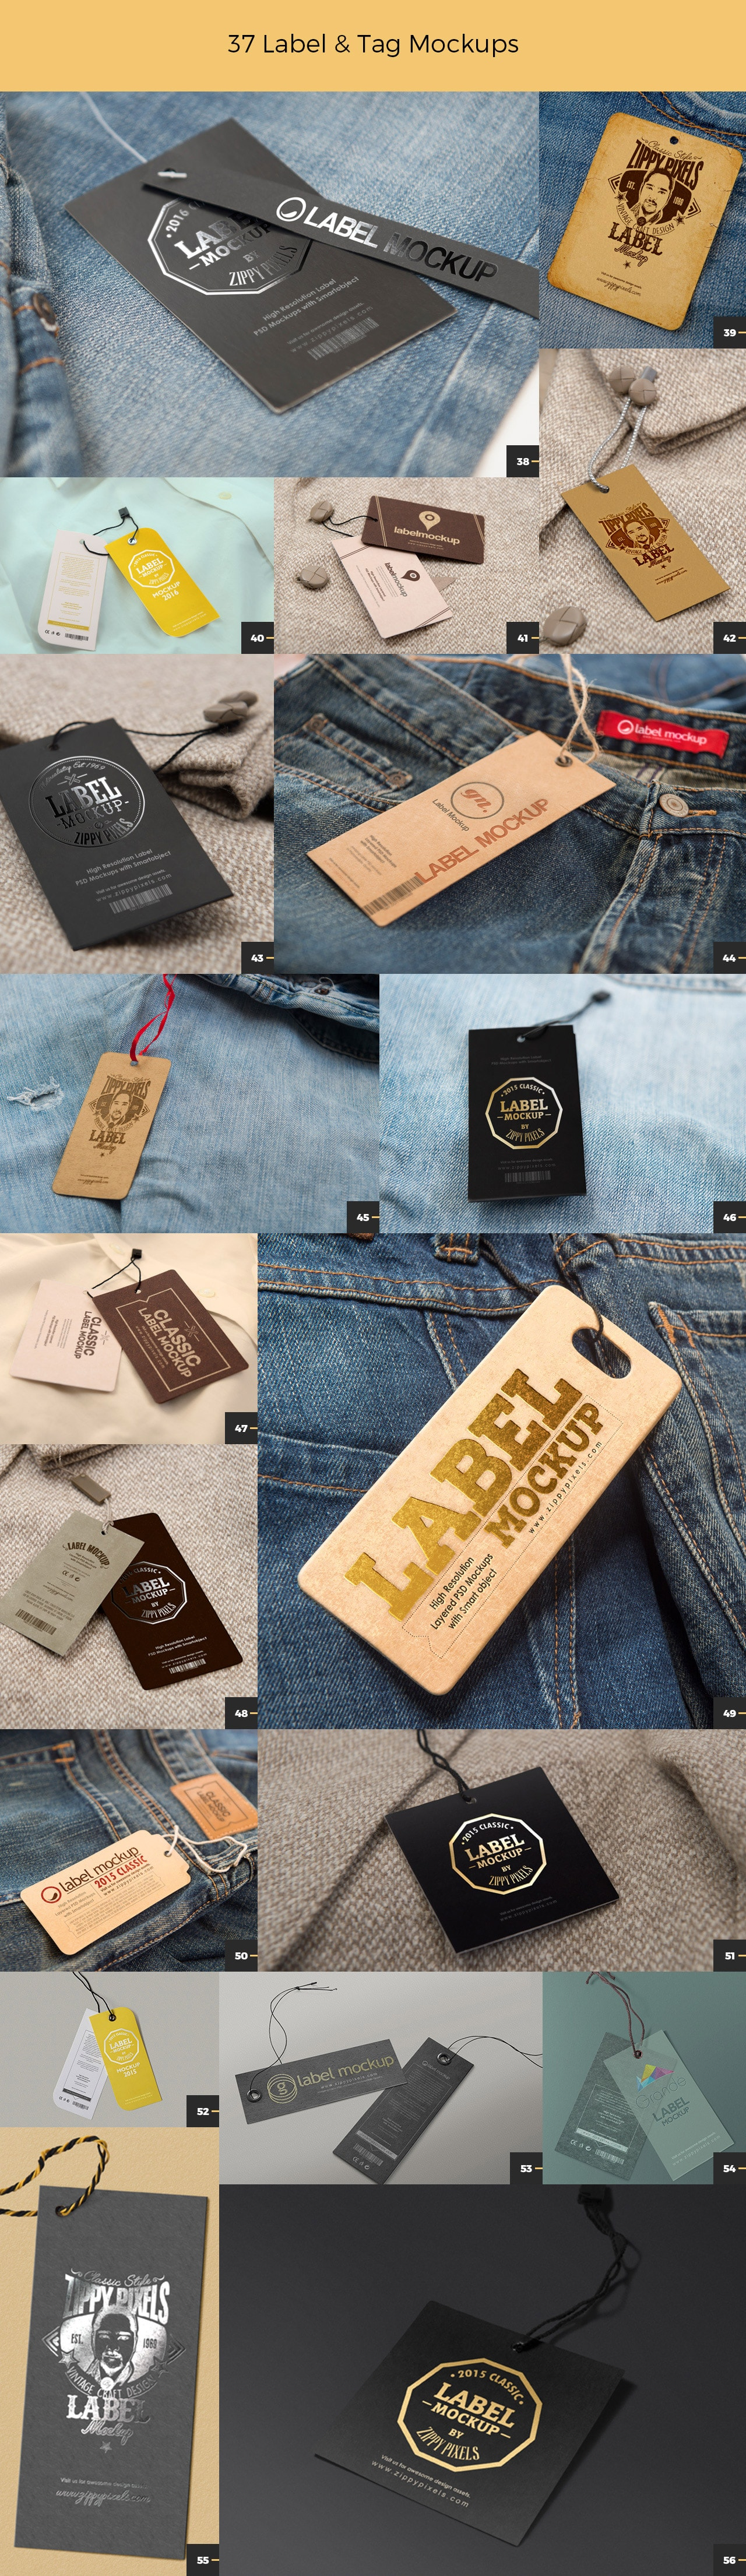 labels-and-tags-mockups-1-